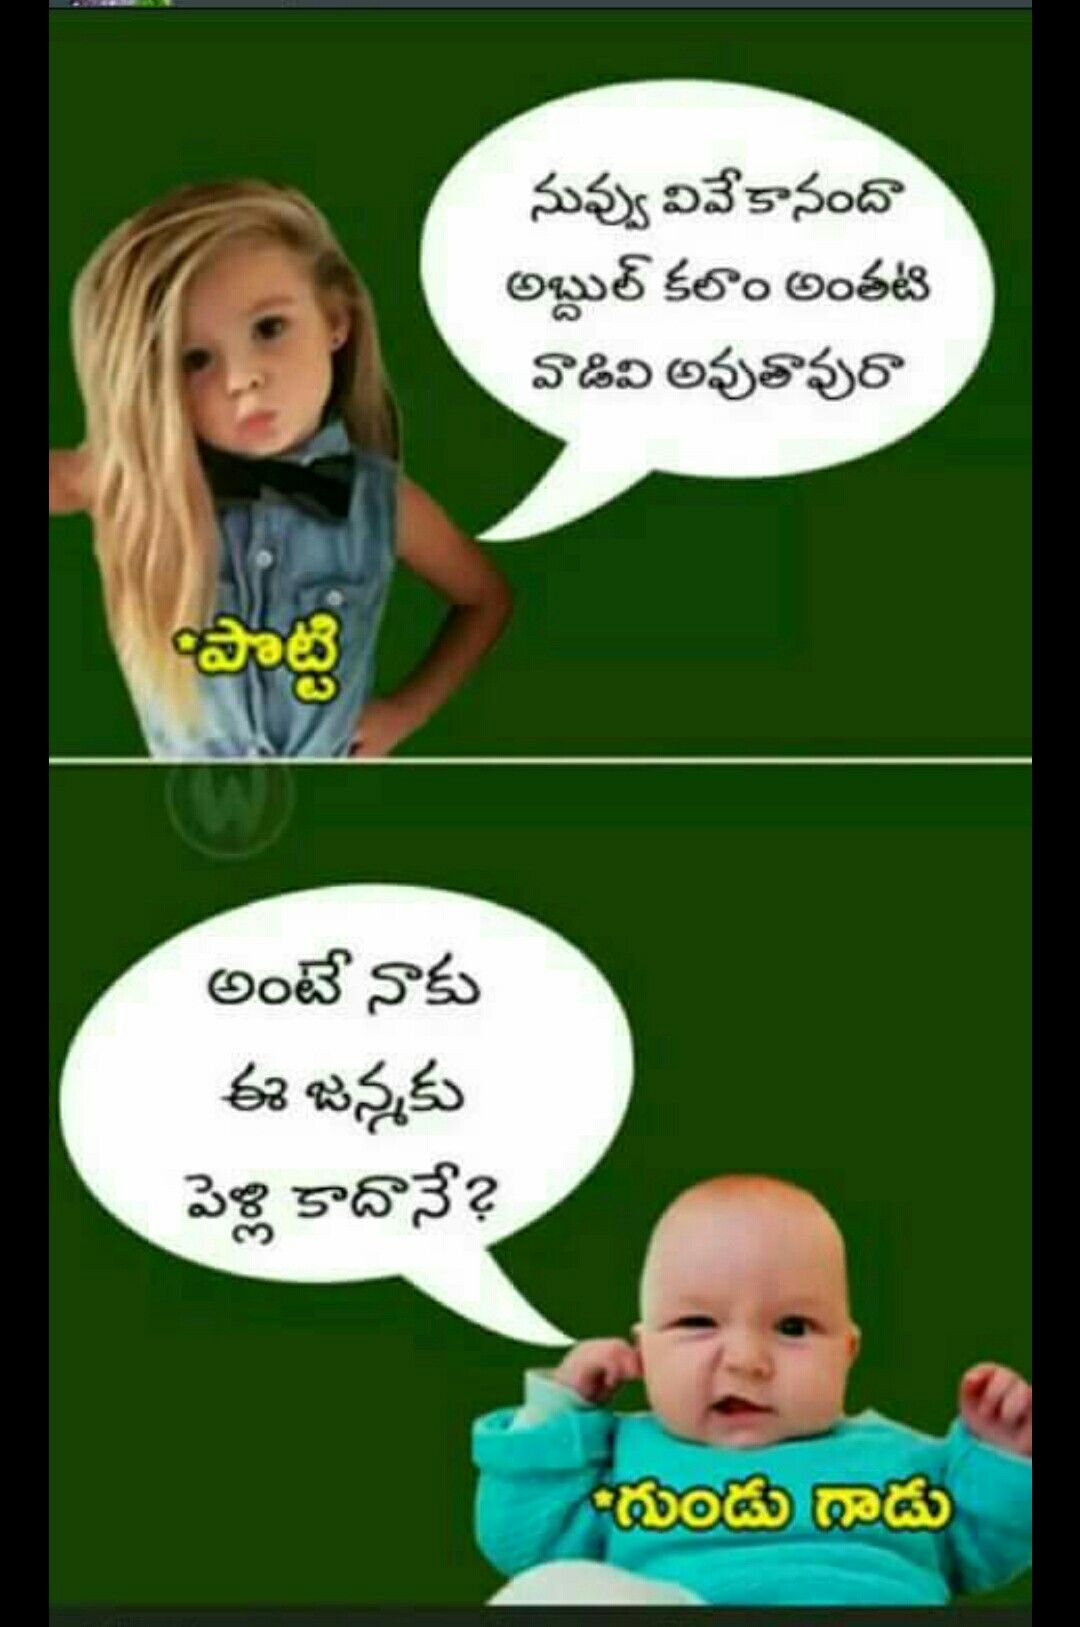 Pin by t raju on Eyes (With images) Jokes images, Funny